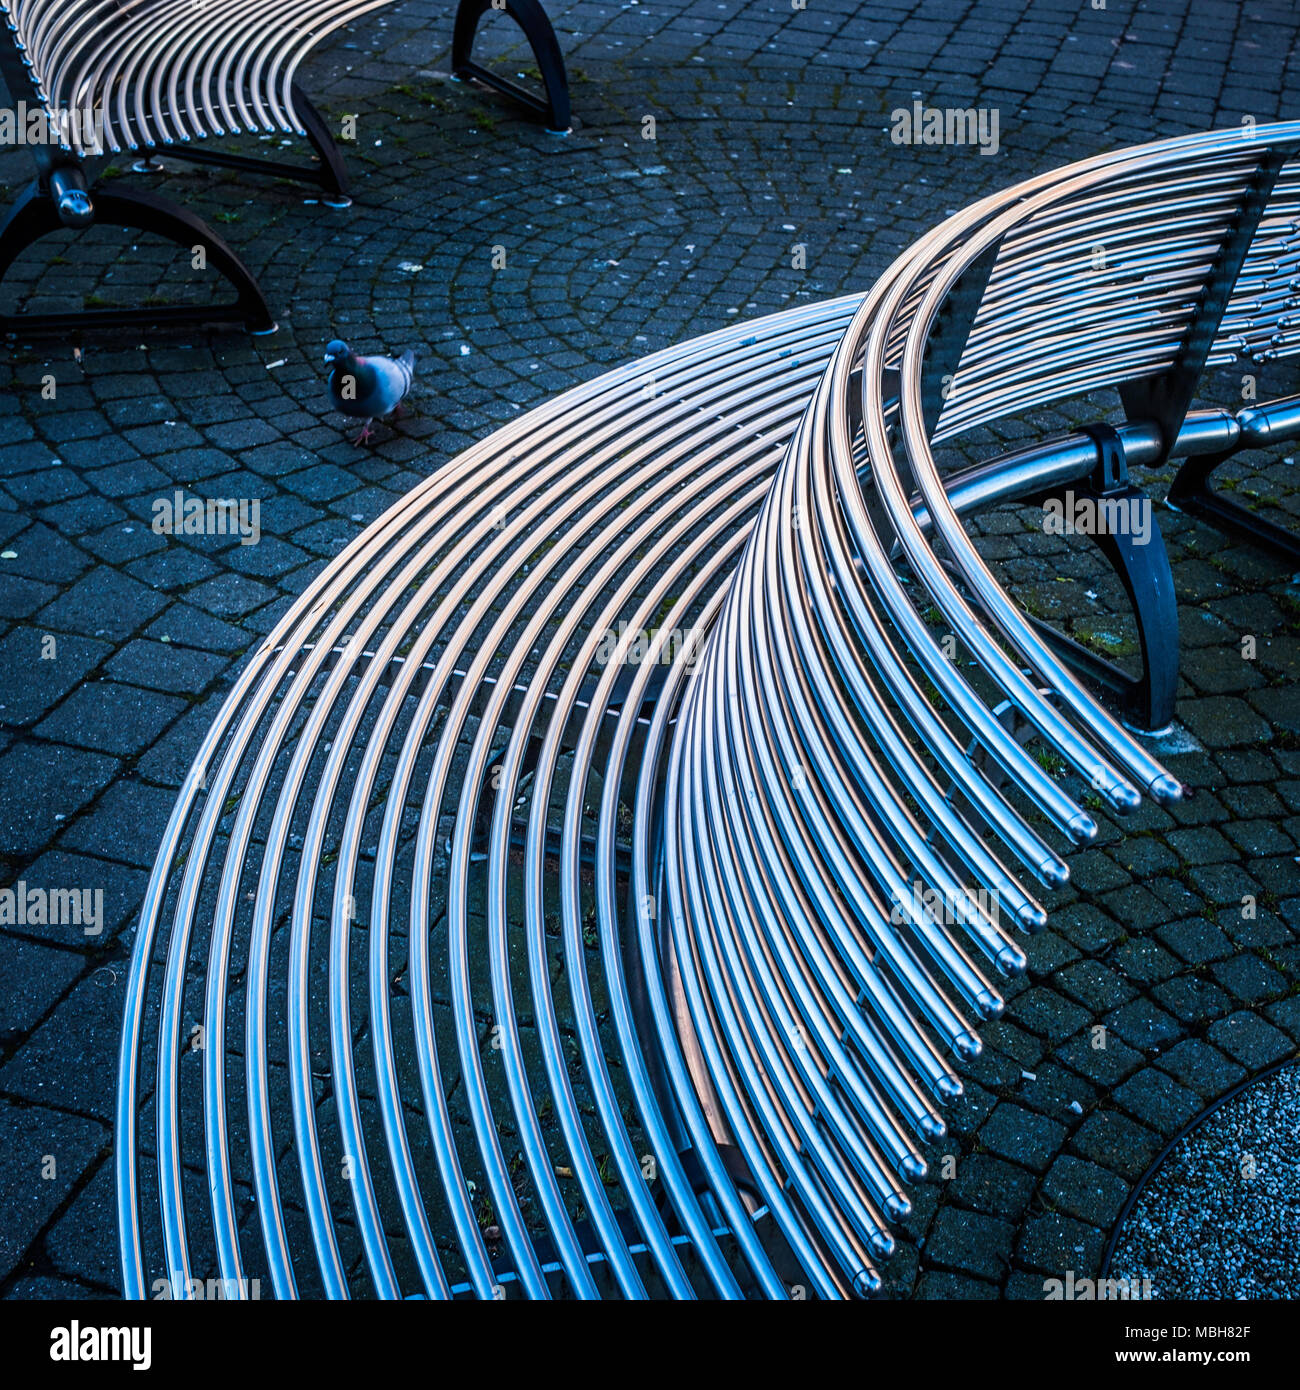 Curved Steel Stock Photos & Curved Steel Stock Images - Alamy